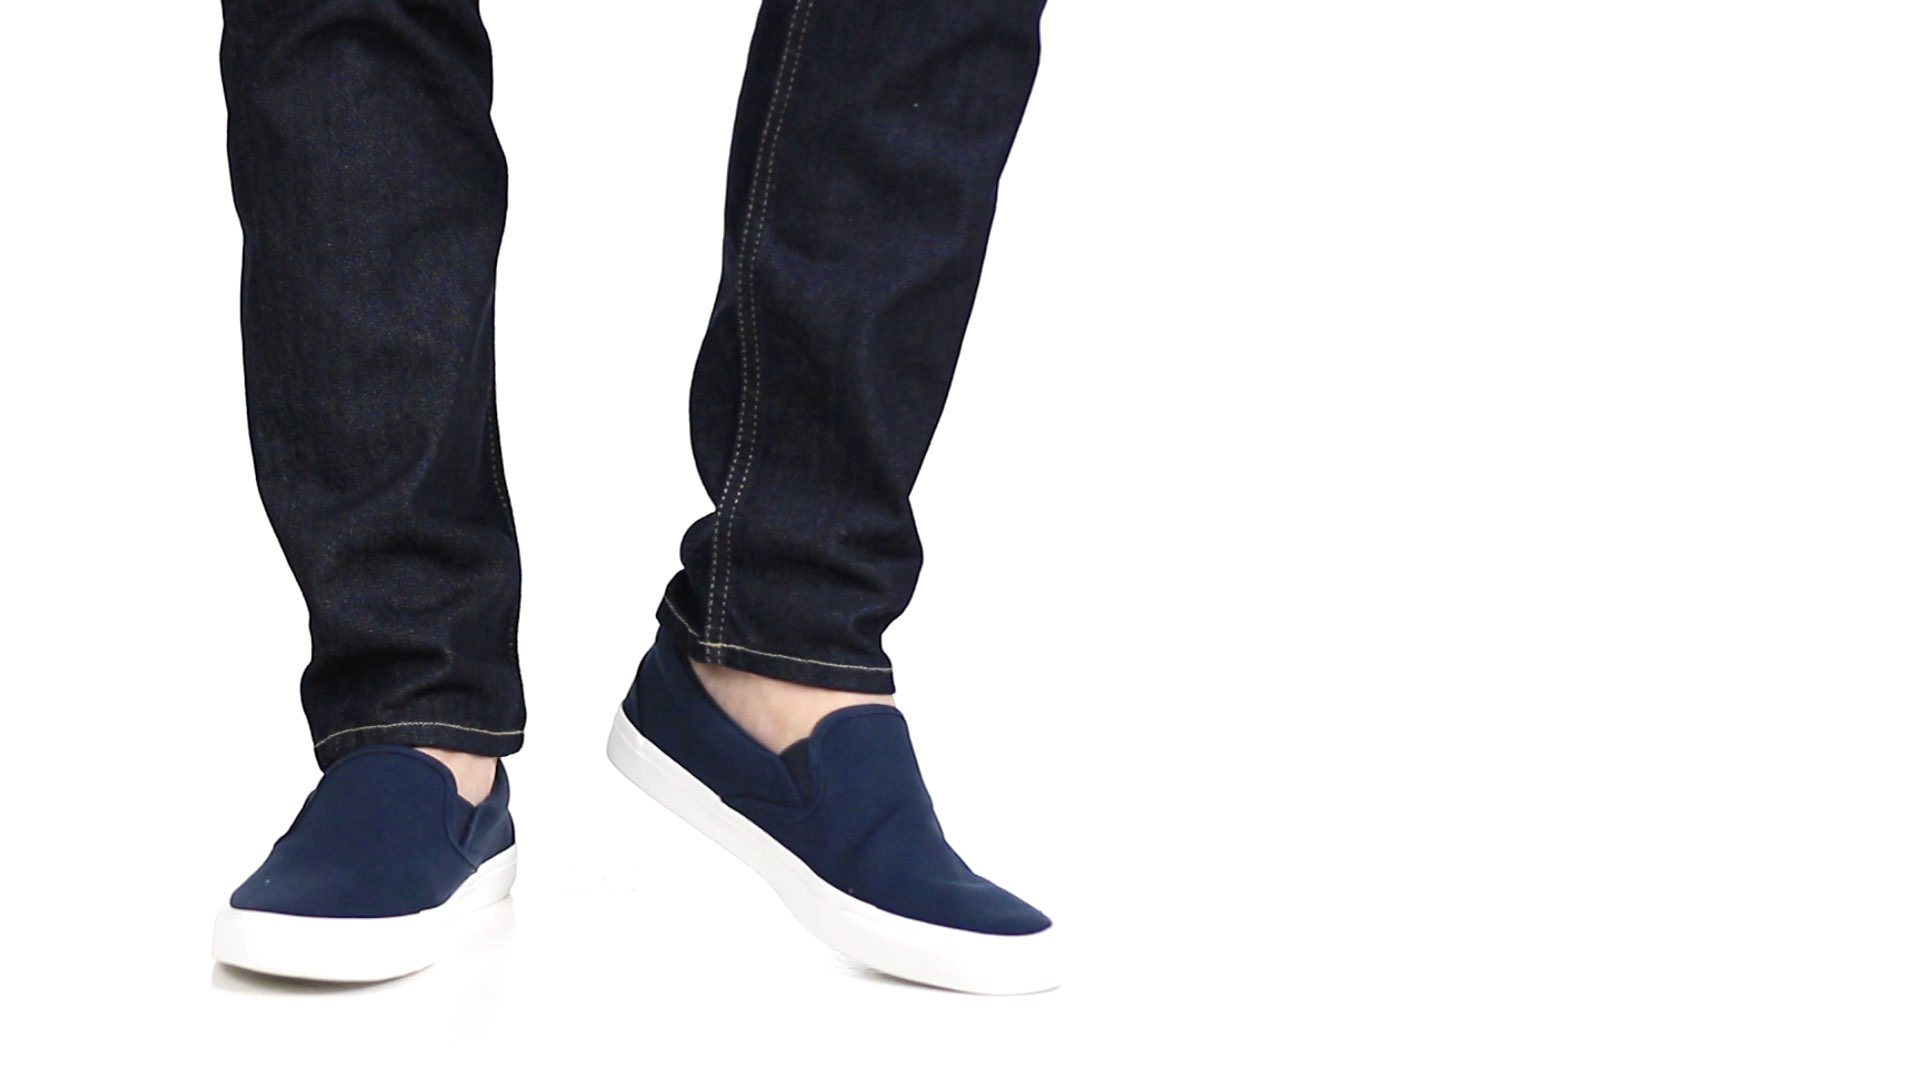 db7f99c3464e 13 Shoes to Wear with Jeans - The Ultimate Guide  2018 UPDATE